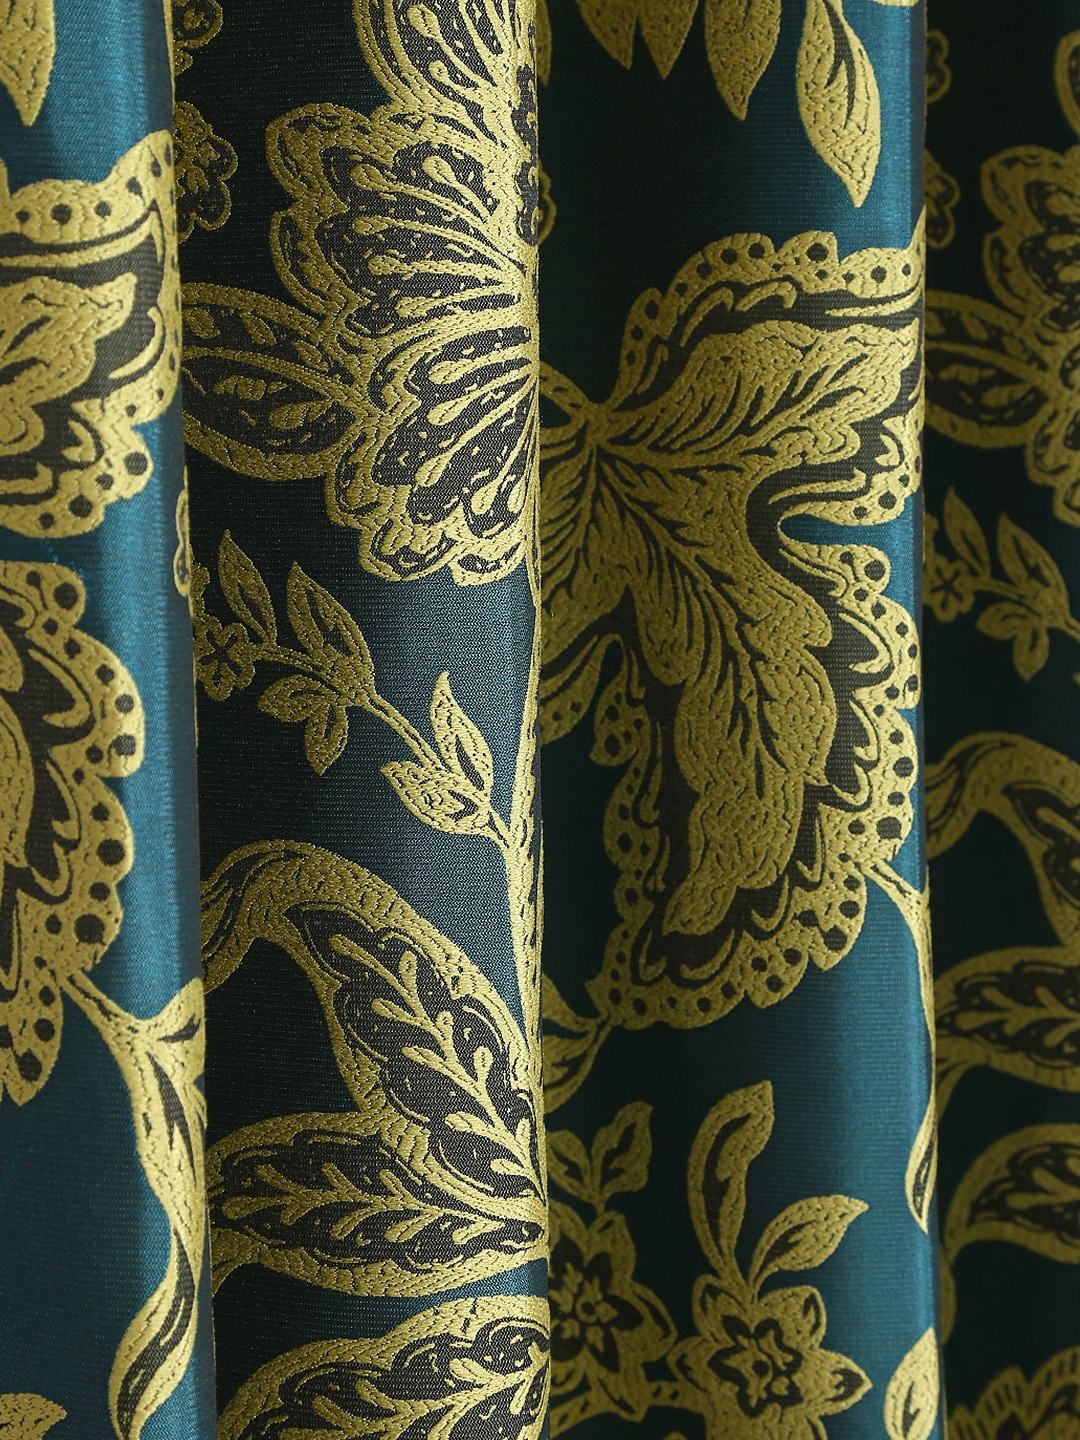 Long patterned curtains - Long Patterned Curtains Long Patterned Curtains 22